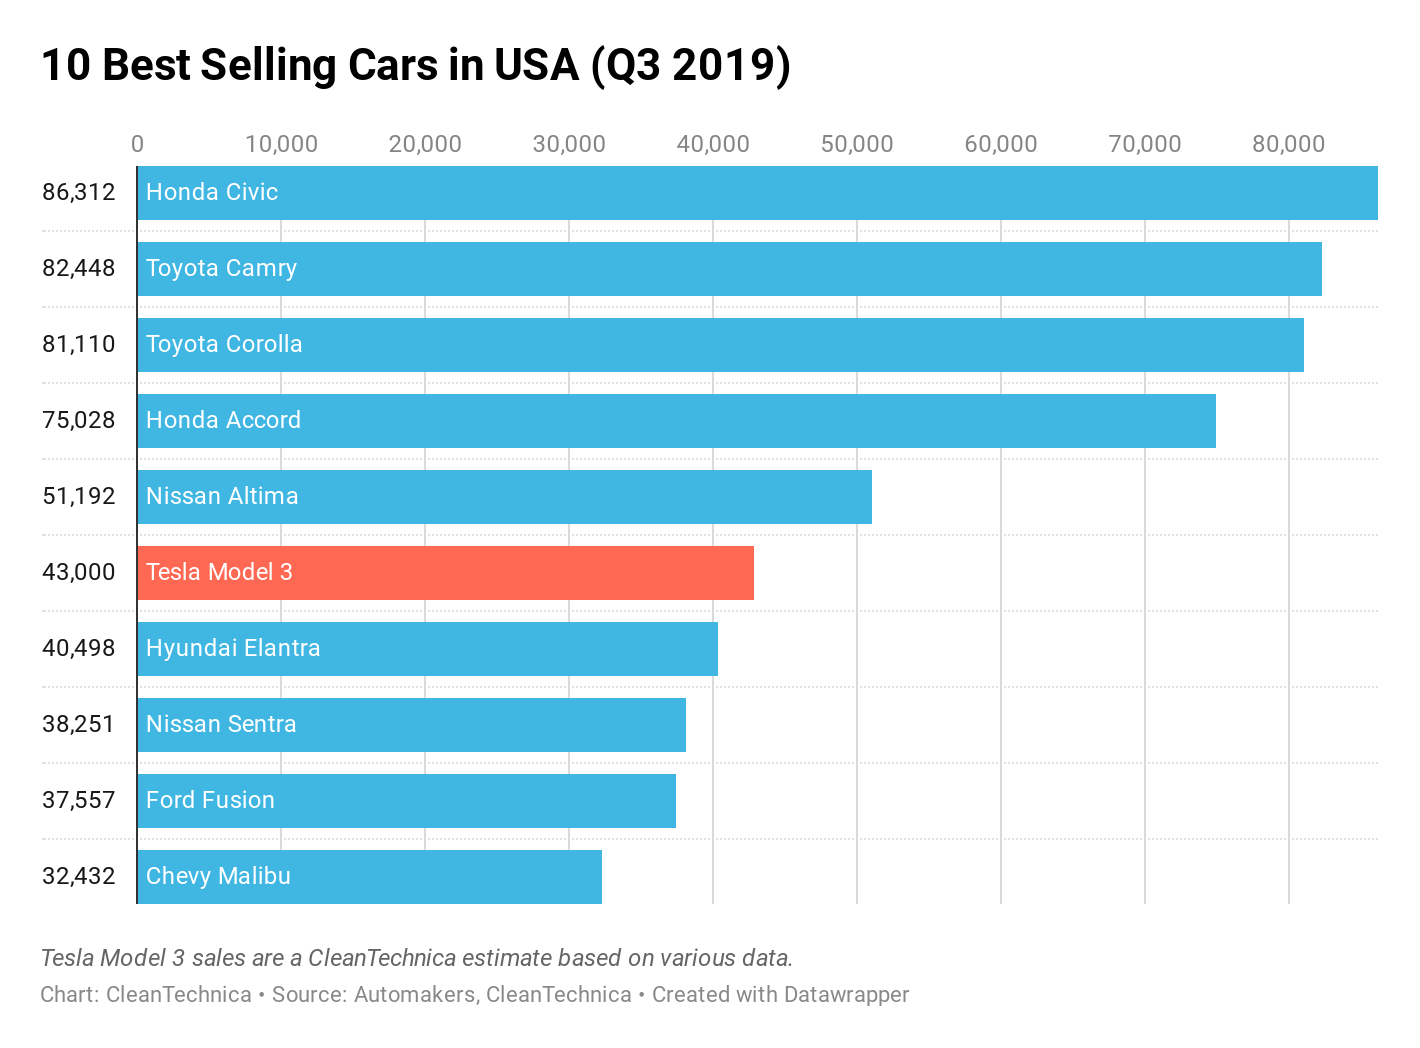 Chart: 10 Best-selling cars in USA (Q3 2019)